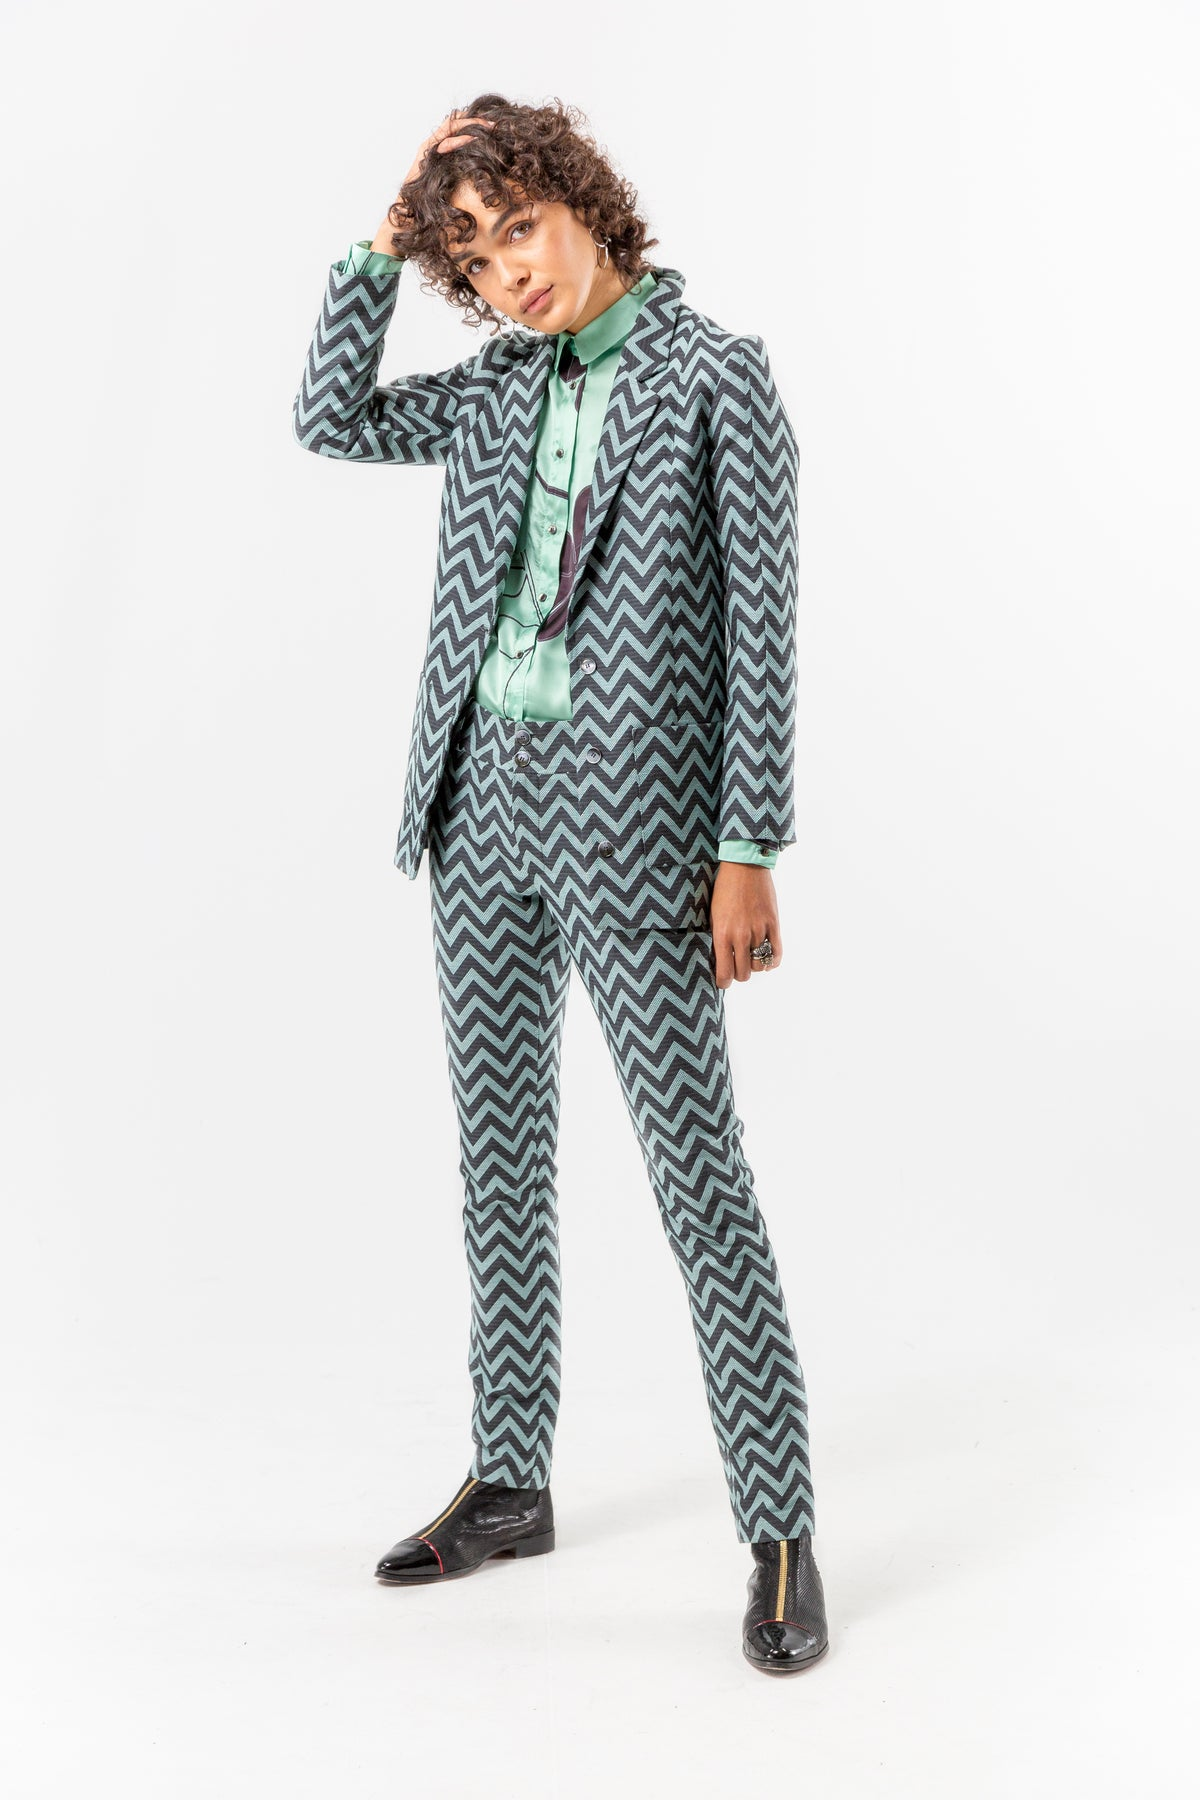 Sonny Crockett blazer in chevron fabric